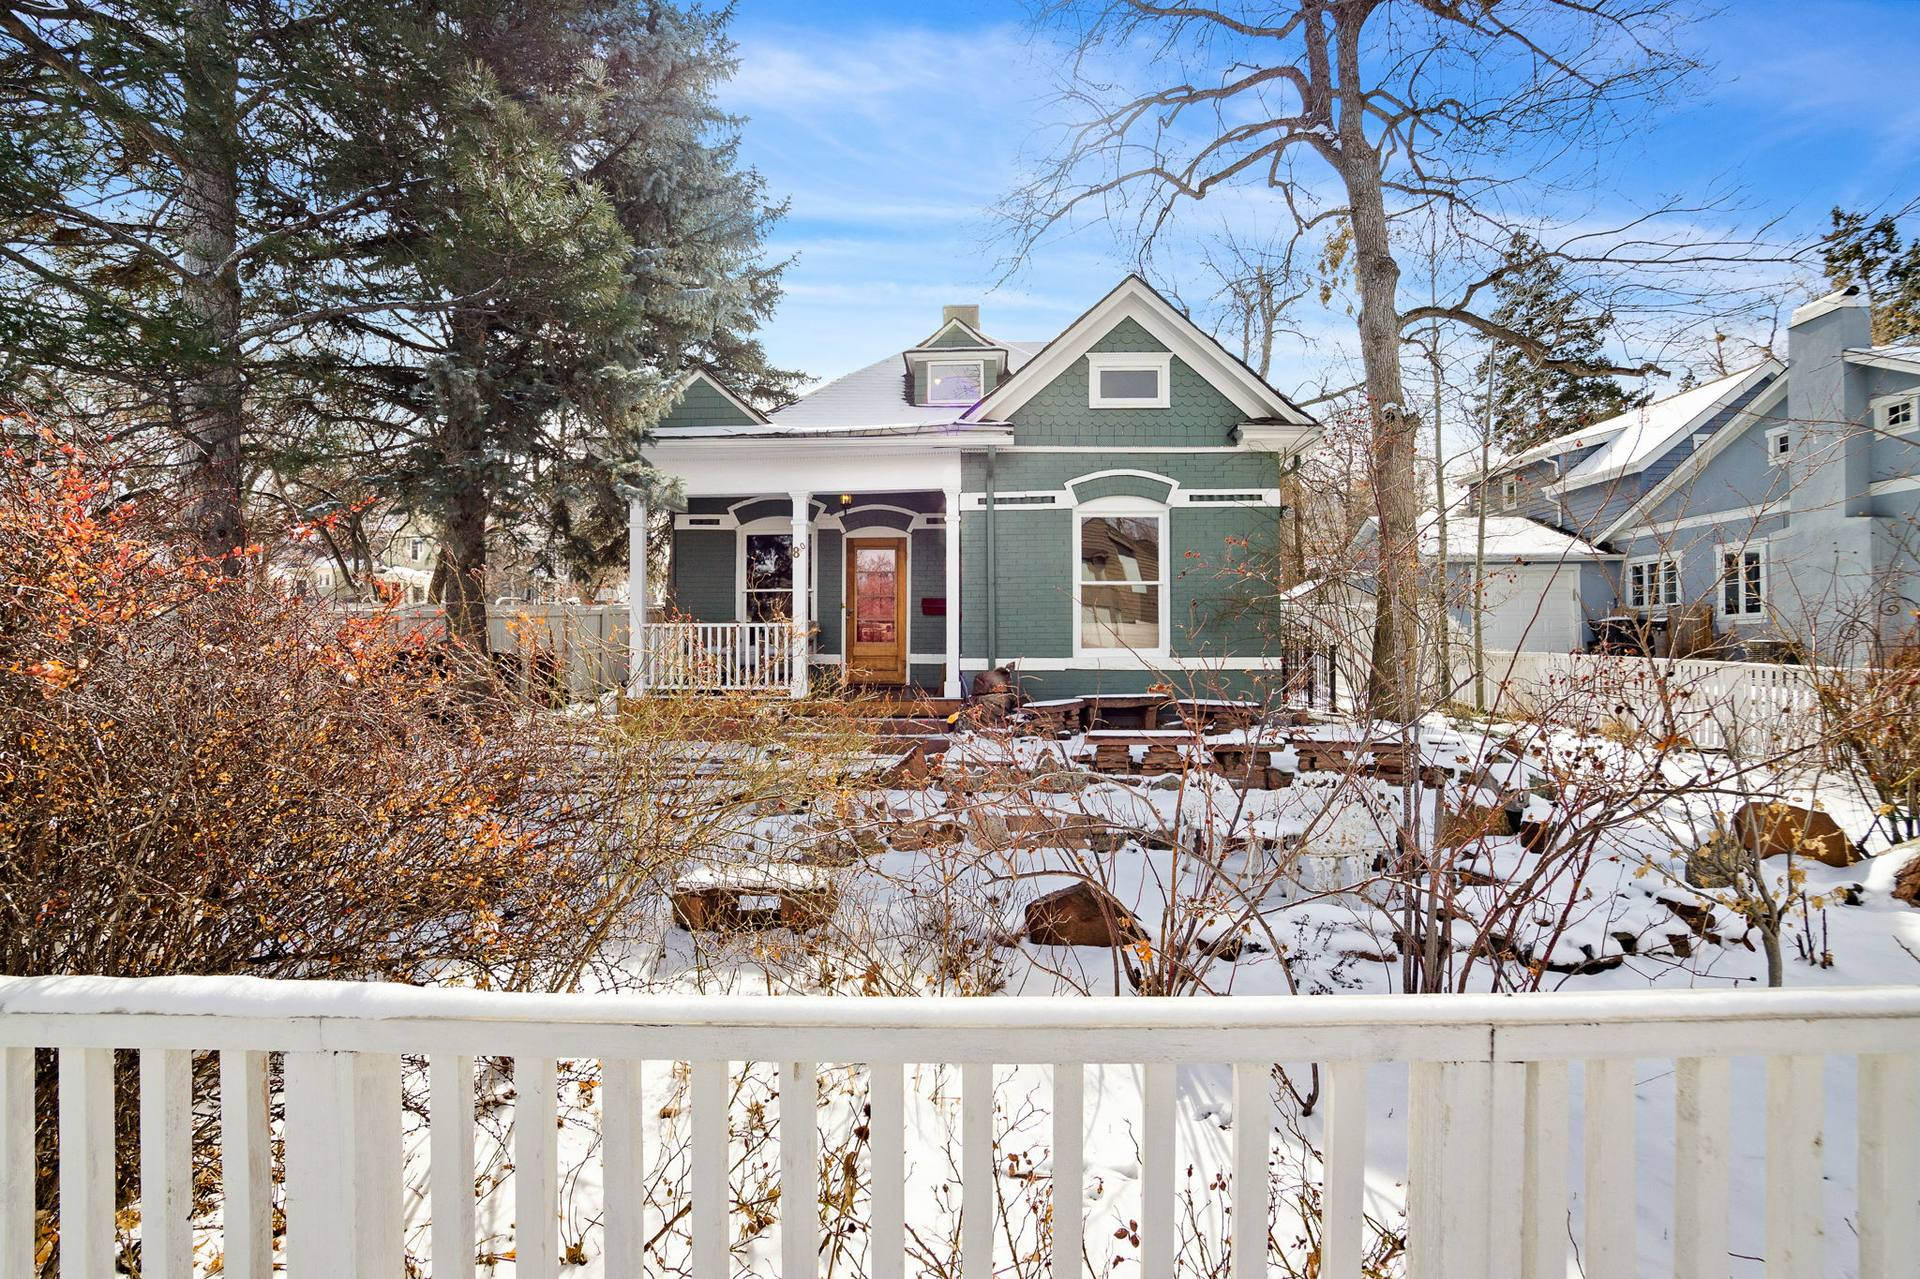 840 Maxwell Ave, Boulder, CO 80304, US